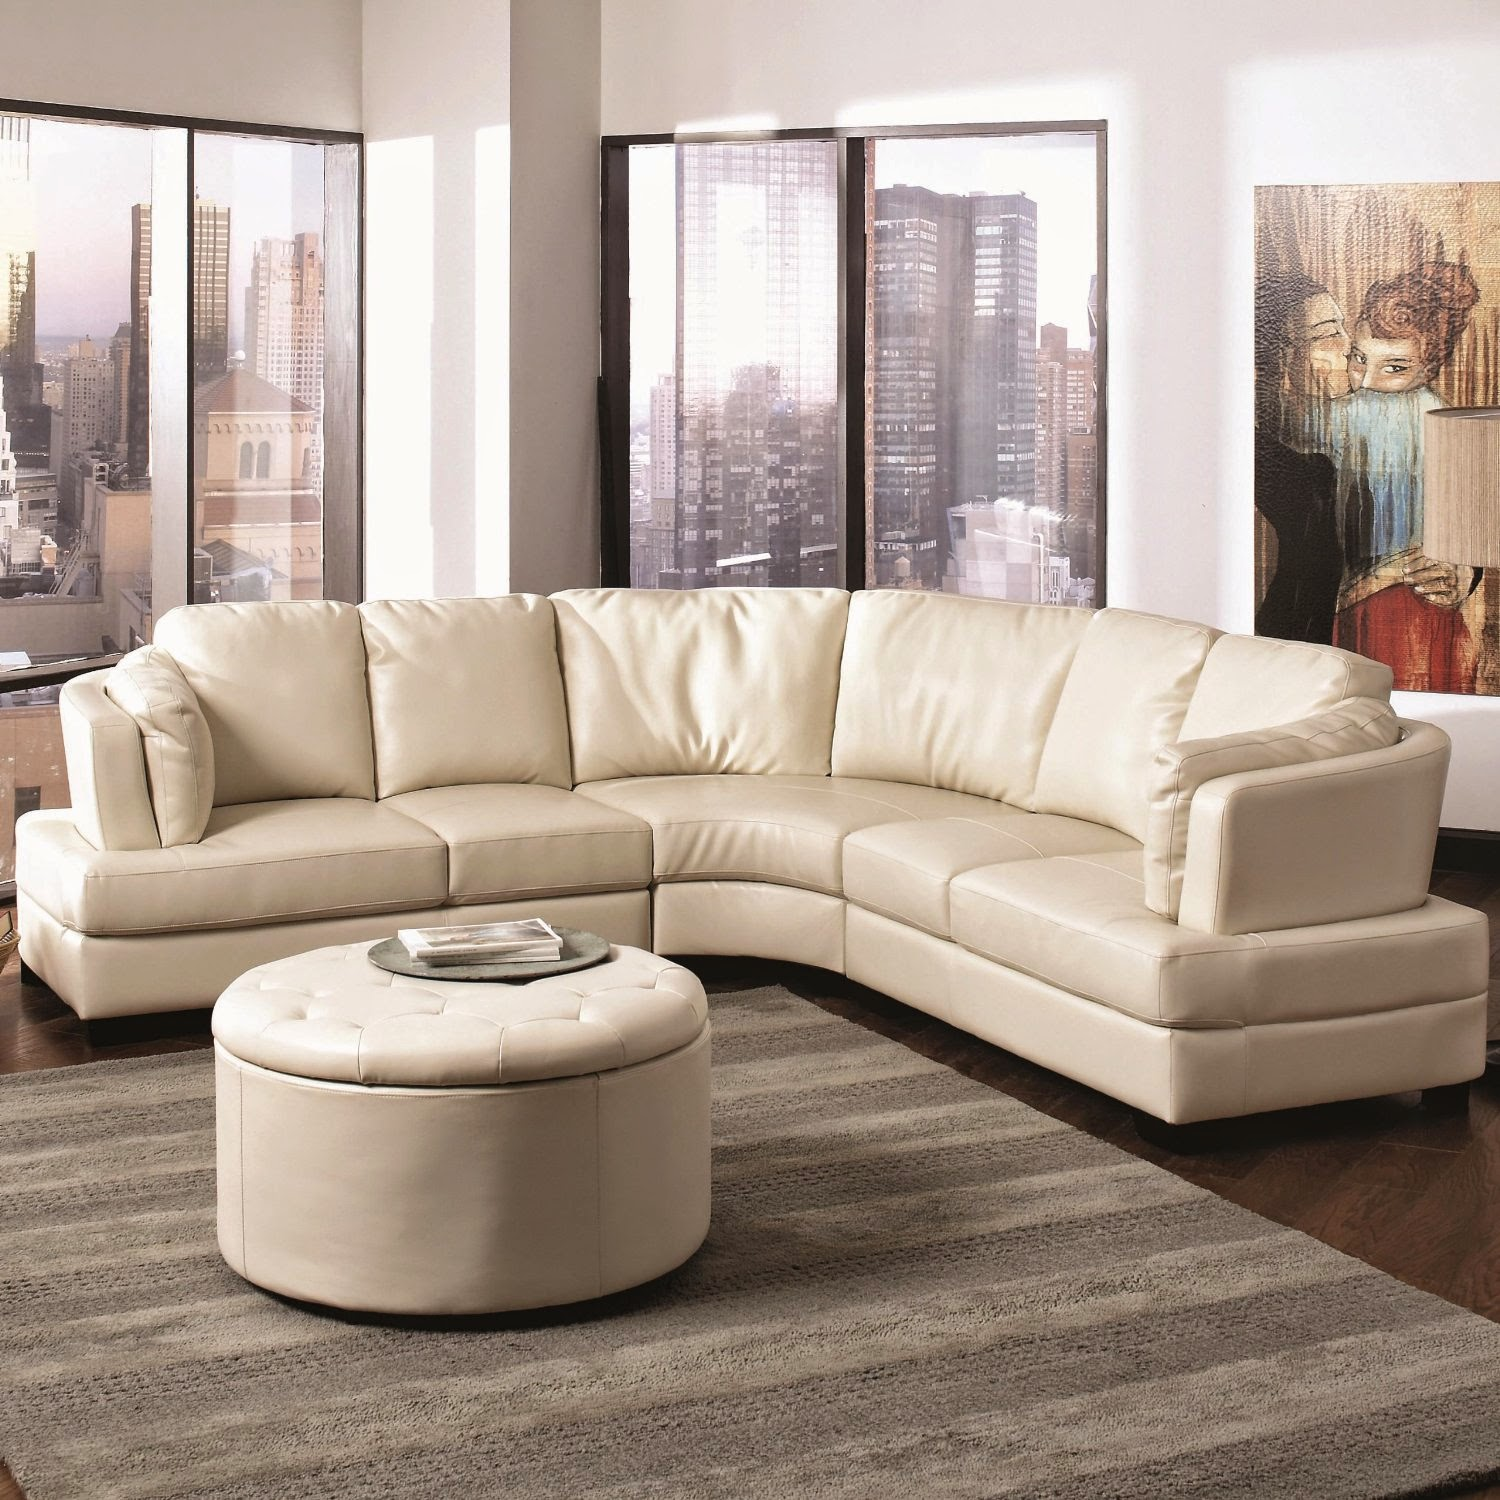 Landen Cream Curved Leather Sofa Contemporary